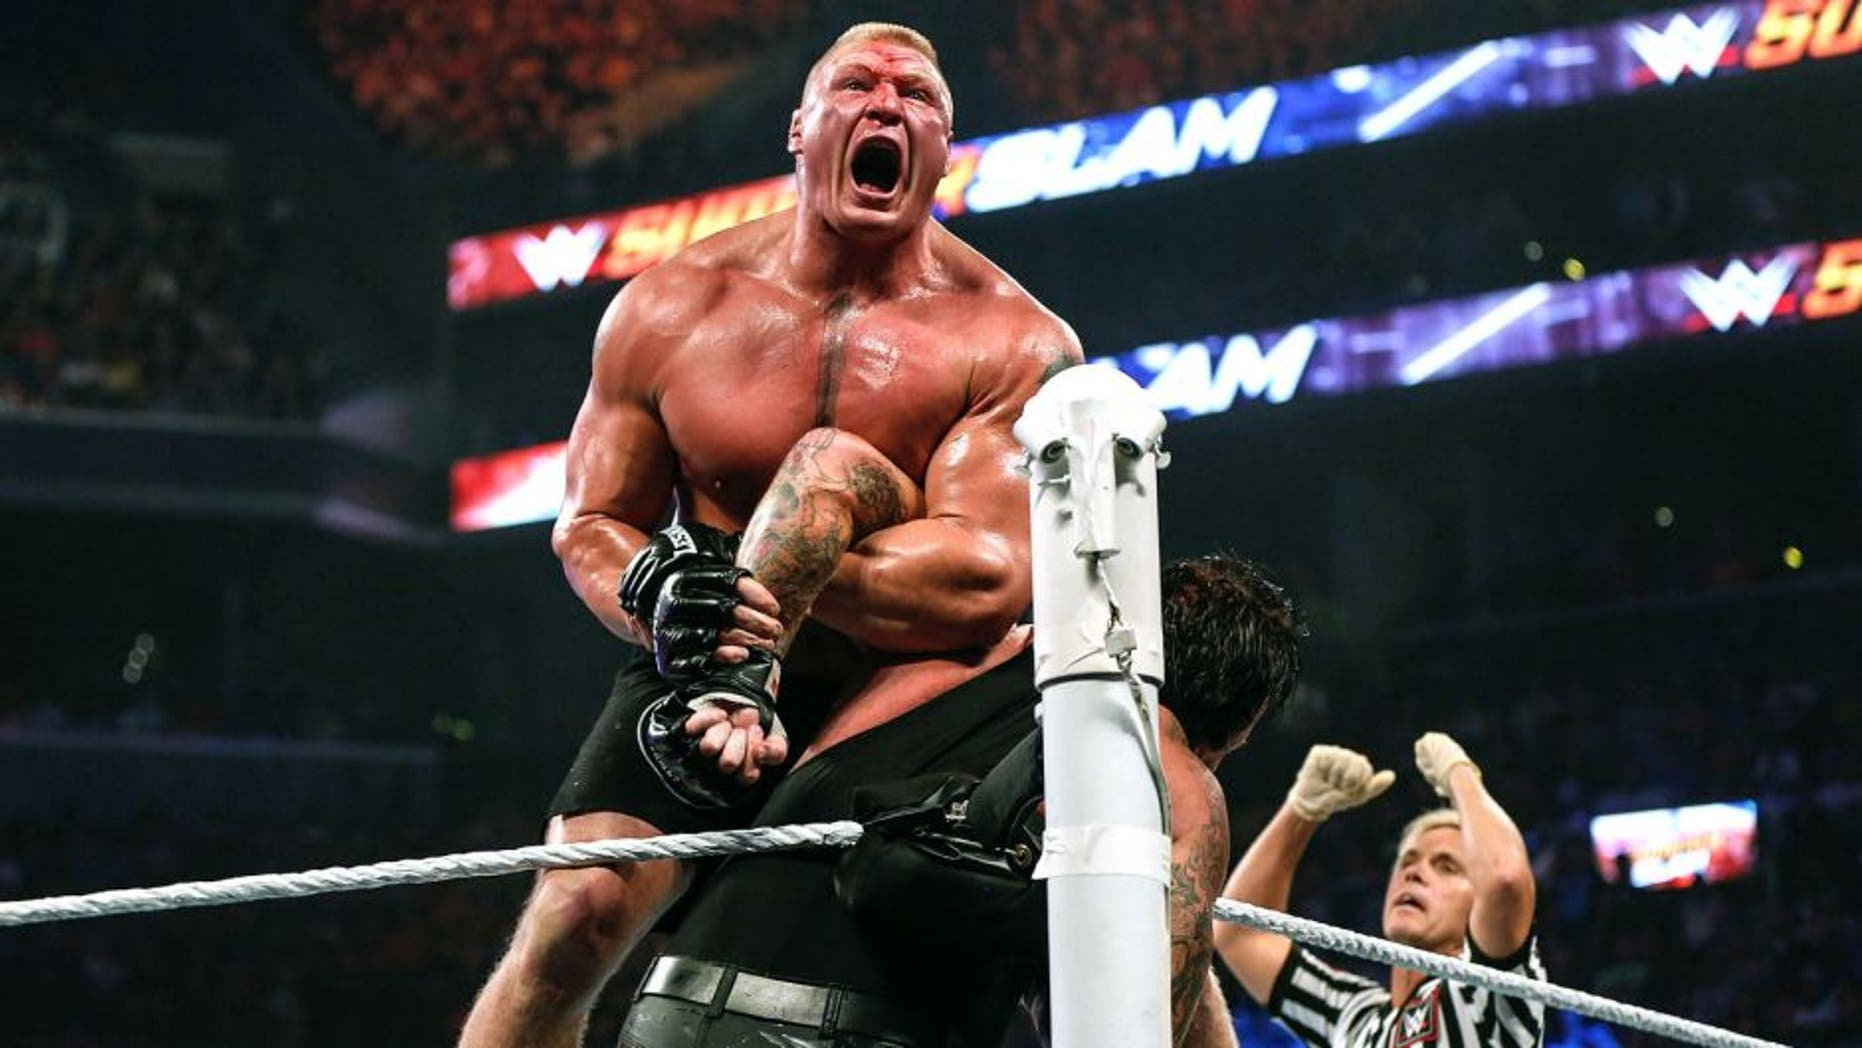 NEW YORK, NY - AUGUST 23: Brock Lesnar and The Undertaker battle it out at the WWE SummerSlam 2015 at Barclays Center of Brooklyn on August 23, 2015 in New York City. (Photo by JP Yim/Getty Images)